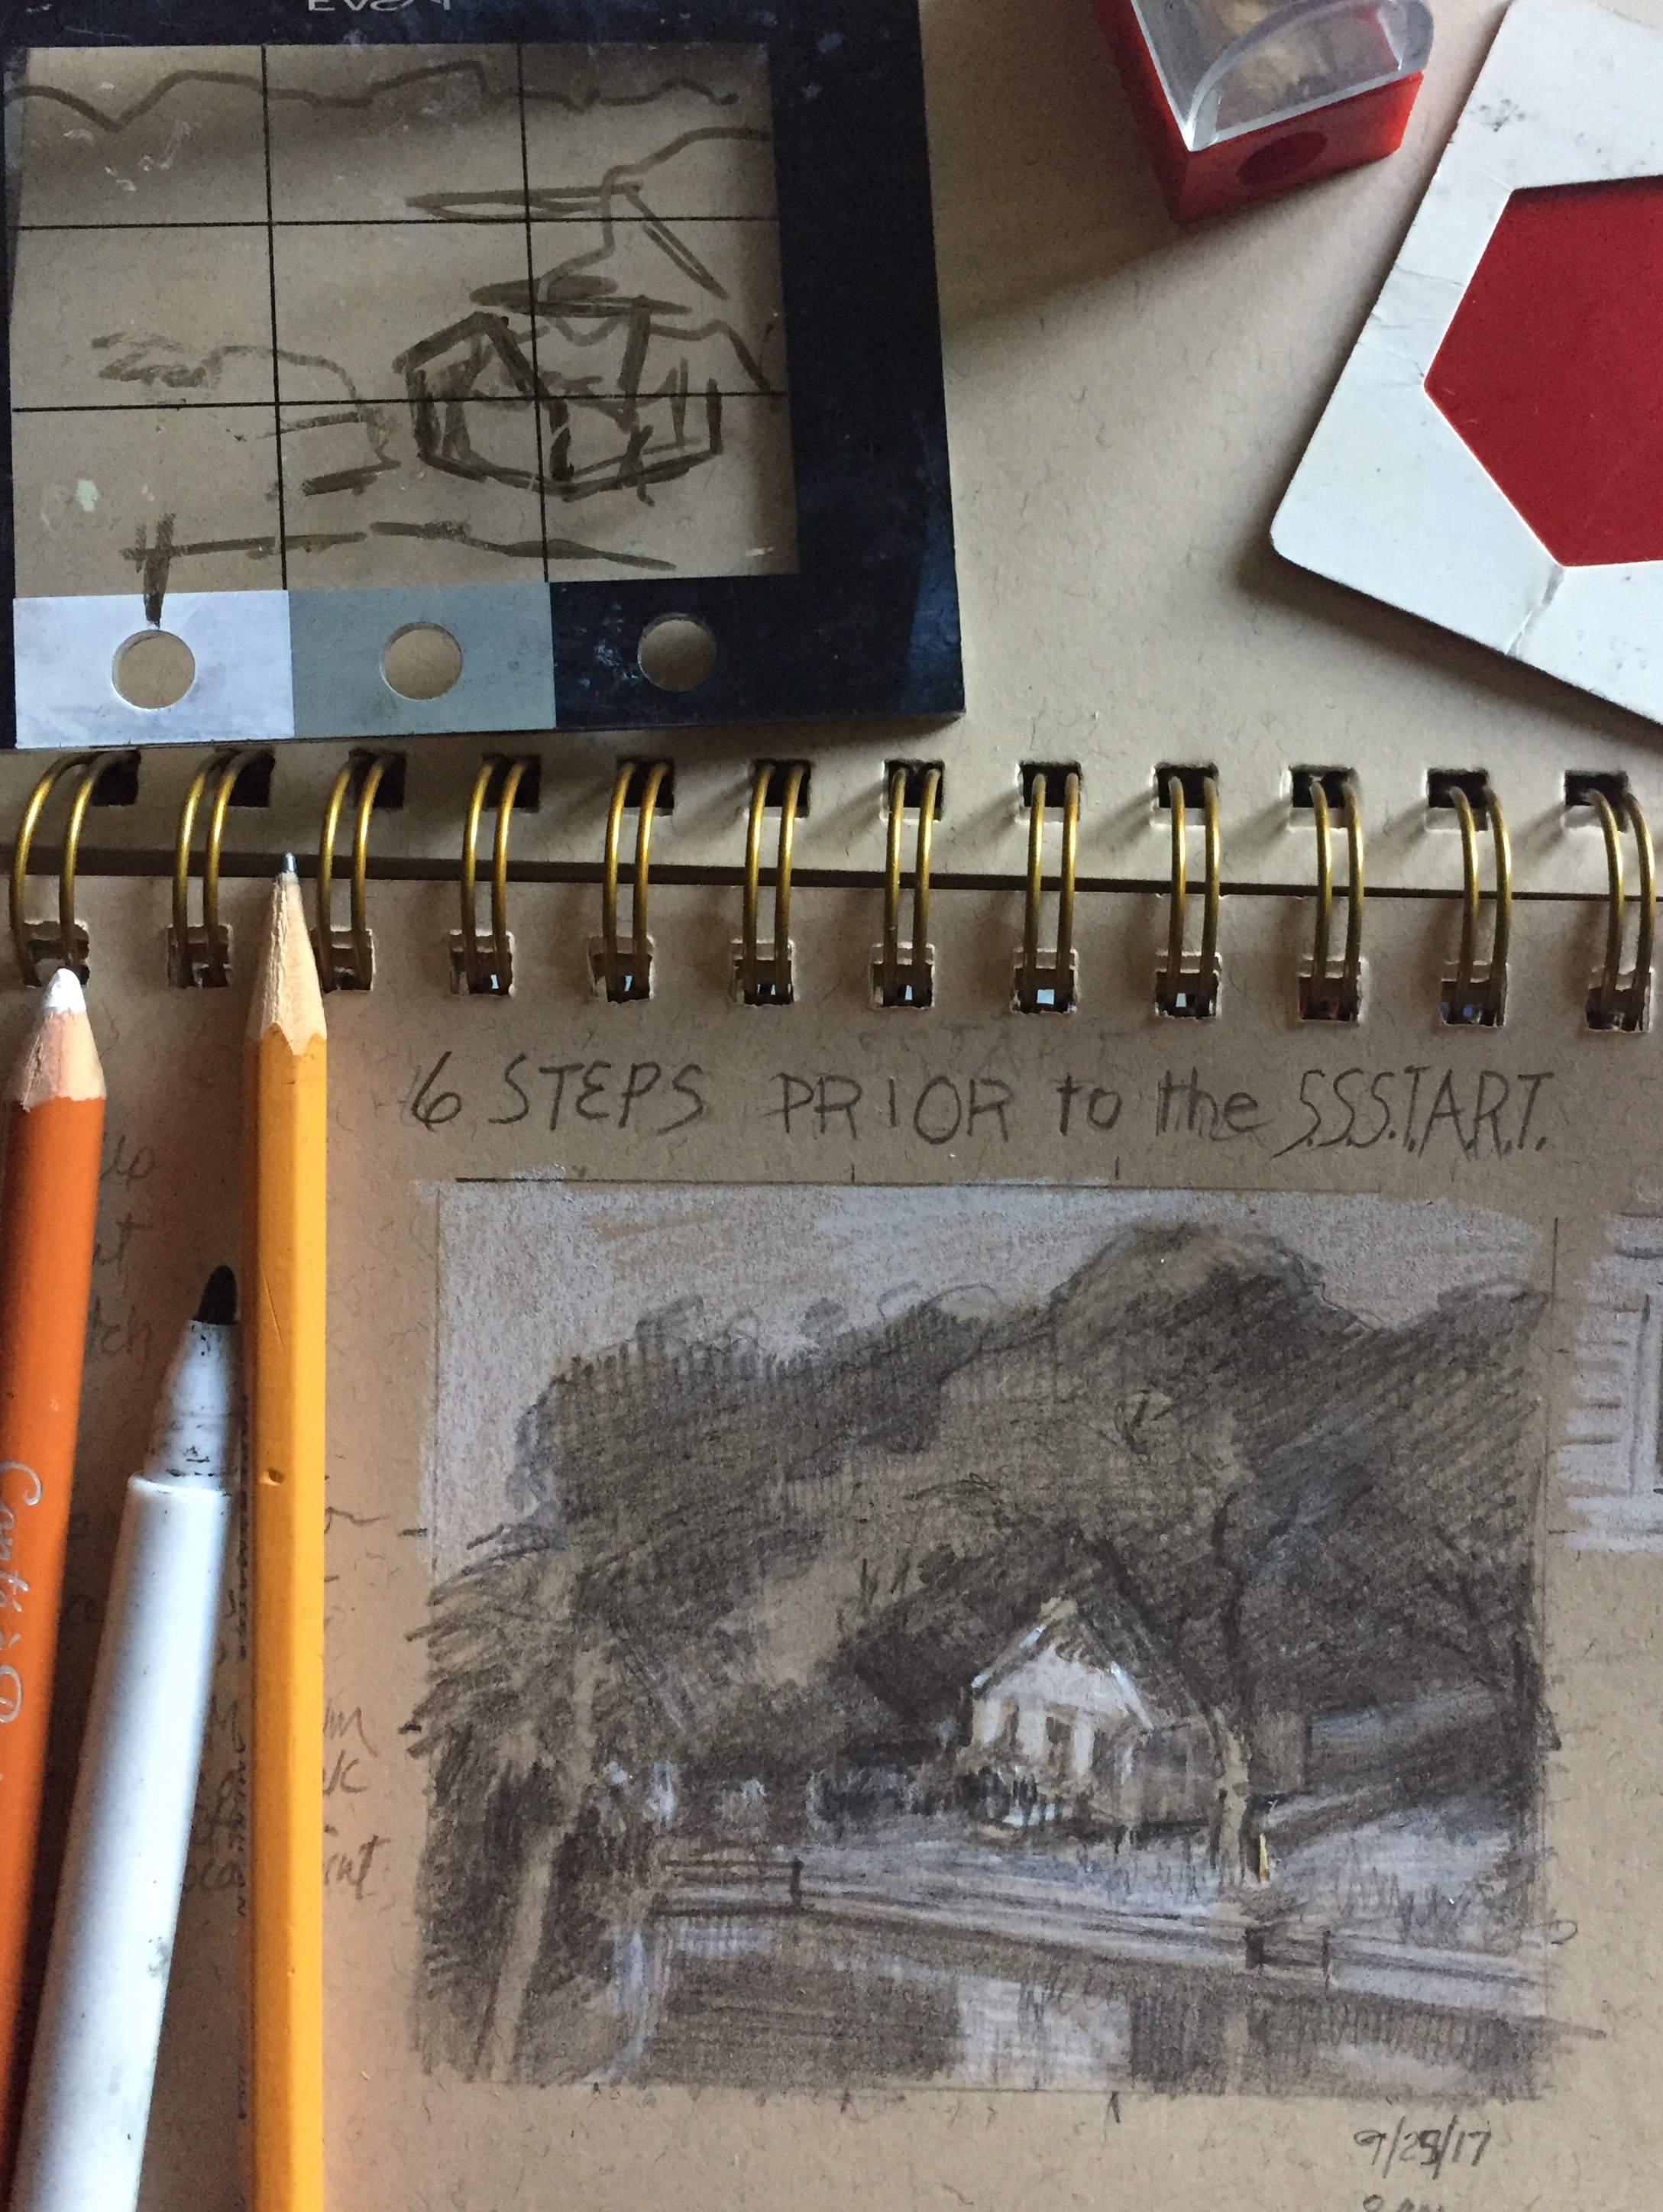 Artists...In the Color & Energy series of workshops, you will learn how to do small sketches first (&how to do them quicker), 6 Steps before you SSStart. Perfect for beginner to intermediate painters yet advanced painters will benefit as well.